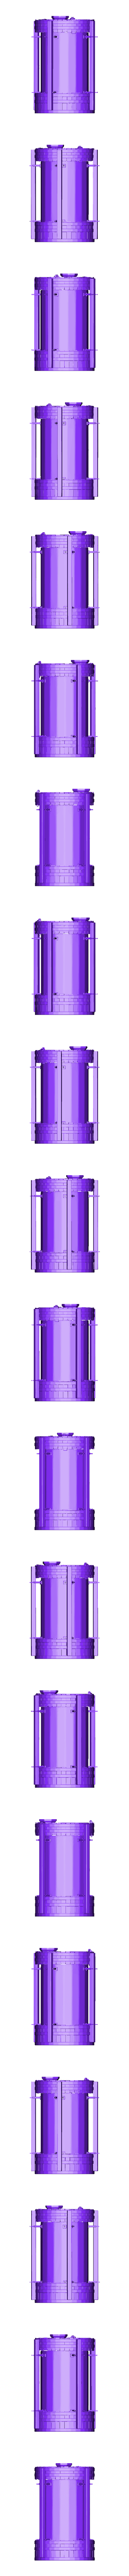 WhaleOilBarrel.stl Download free STL file Various Cthulhu Props x25 • 3D printing object, CharlieVet